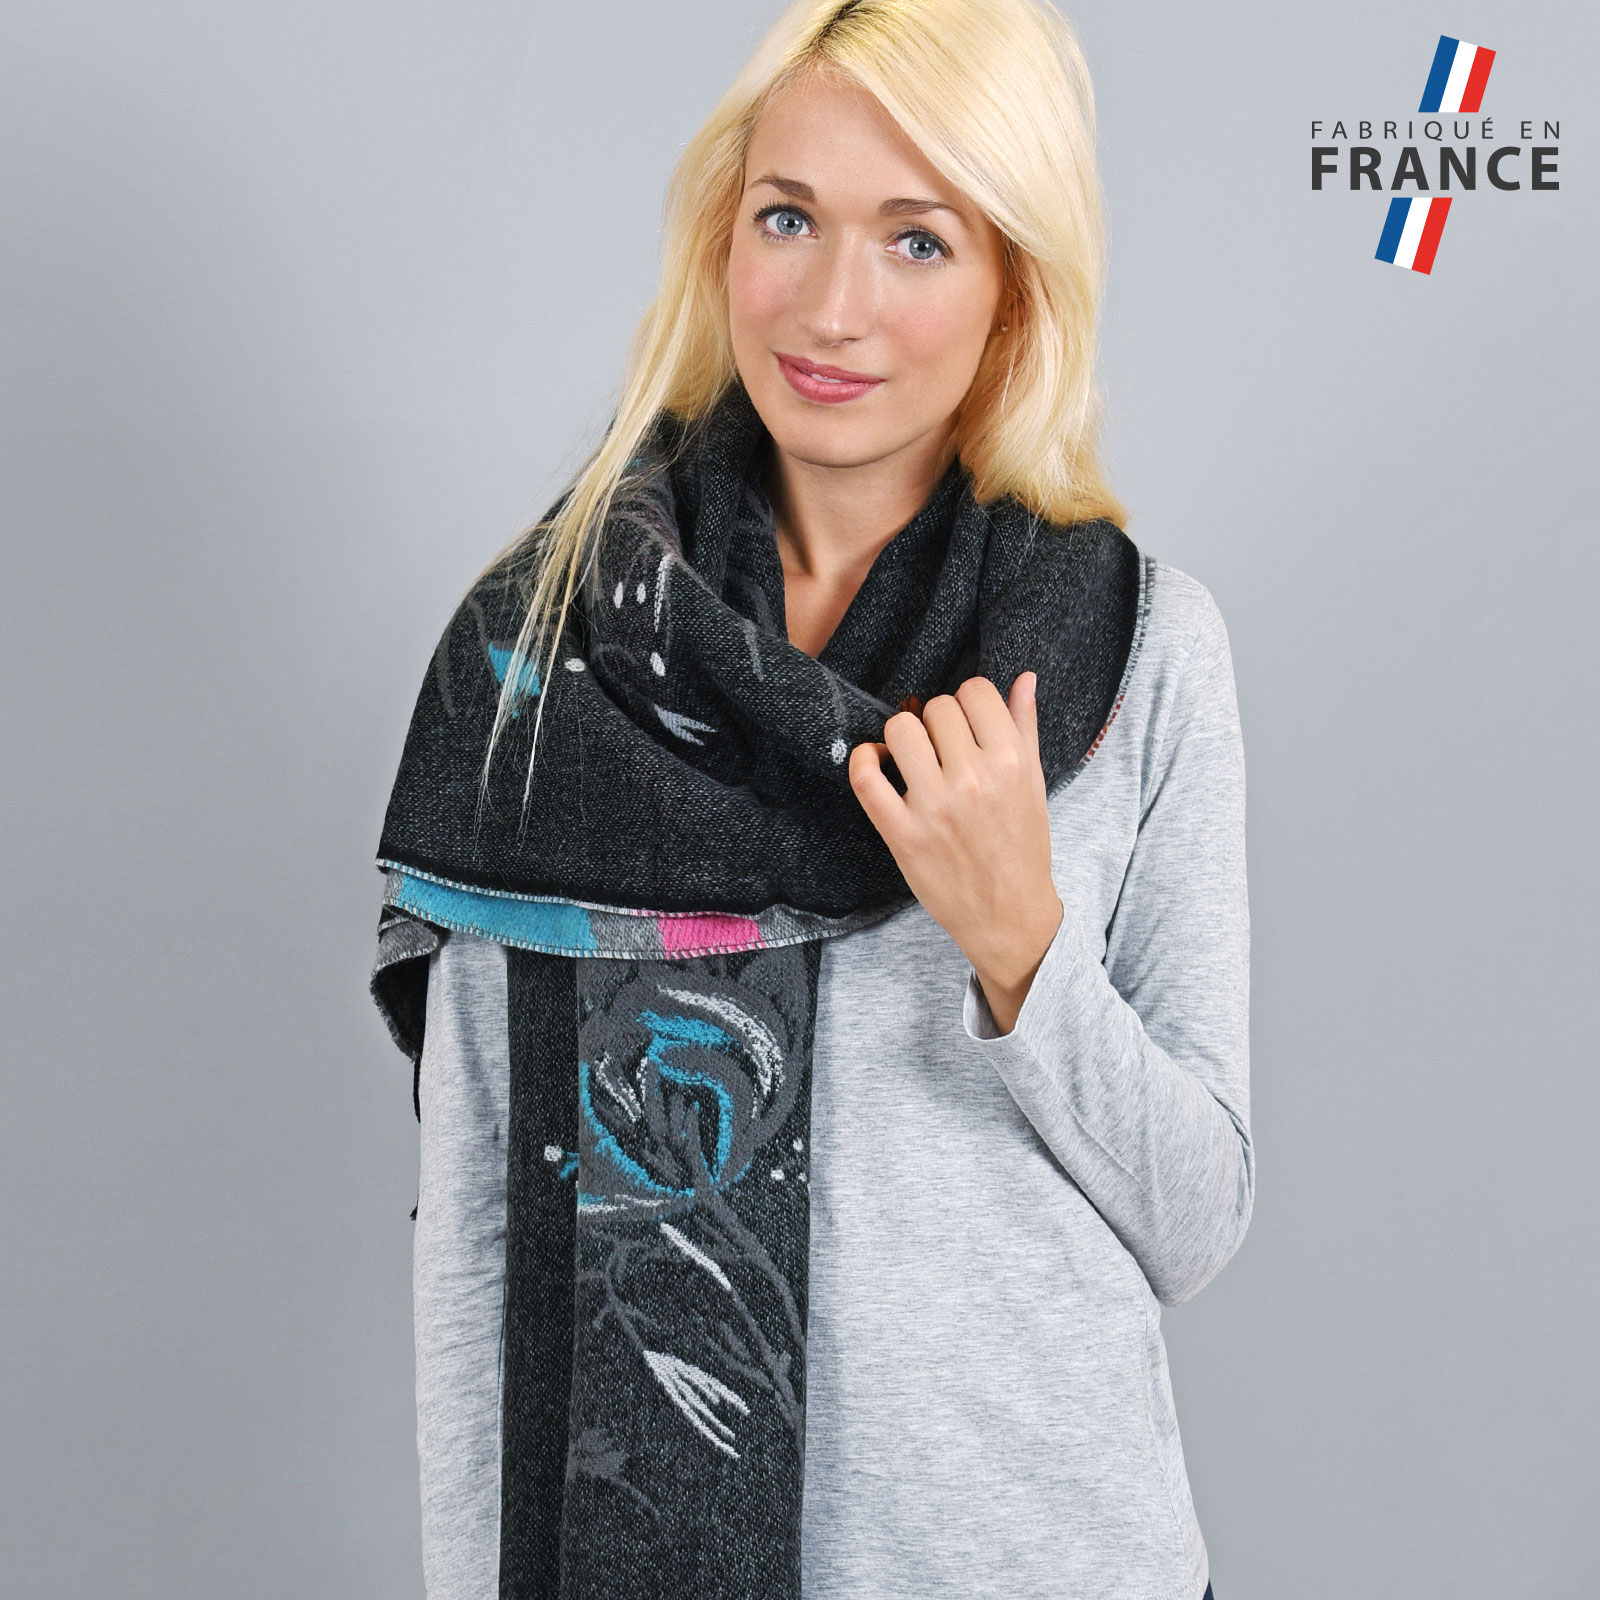 AT-03442-VF16-1-LB_FR-chale-femme-anthracite-gris-cerisiers